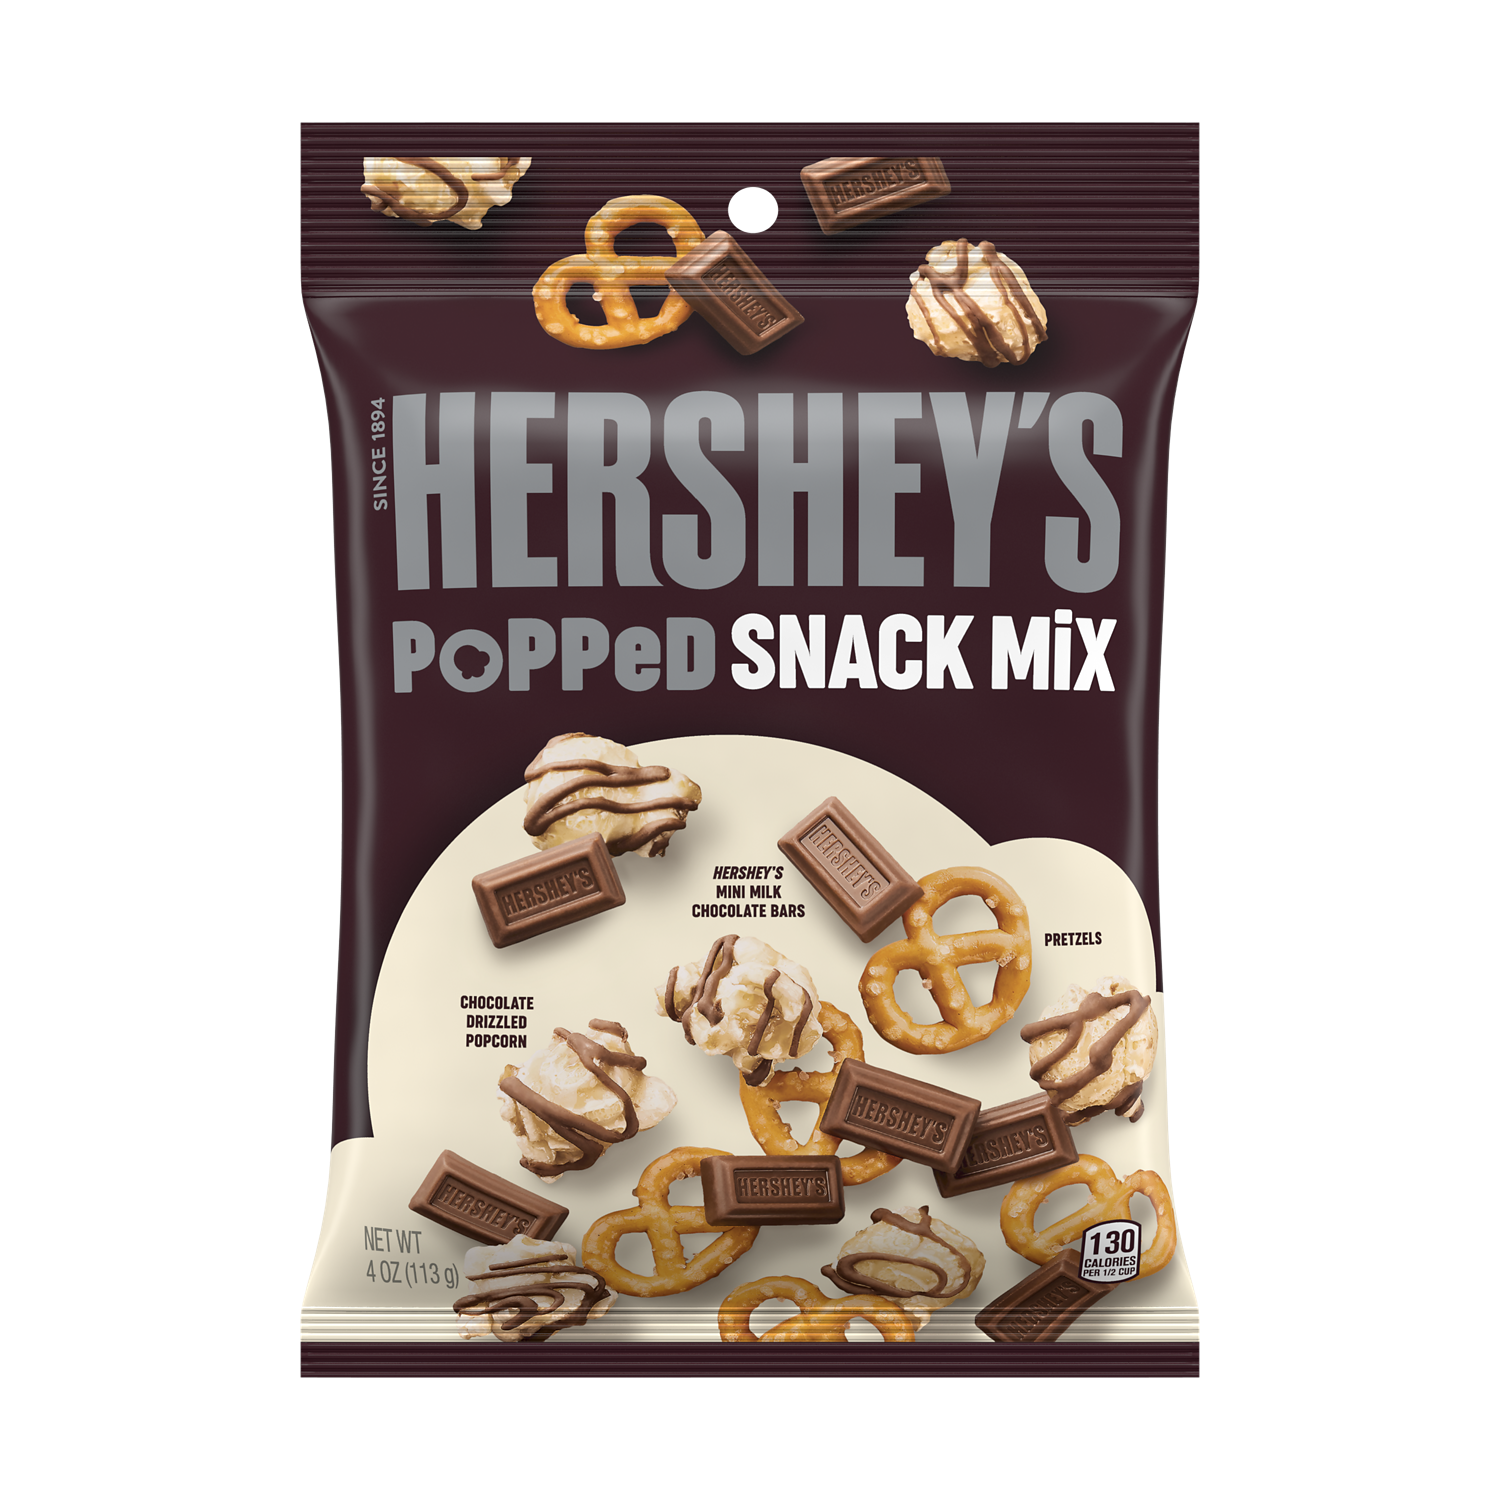 HERSHEY'S Popped Milk Chocolate Snack Mix, 4 oz bag - Front of Package